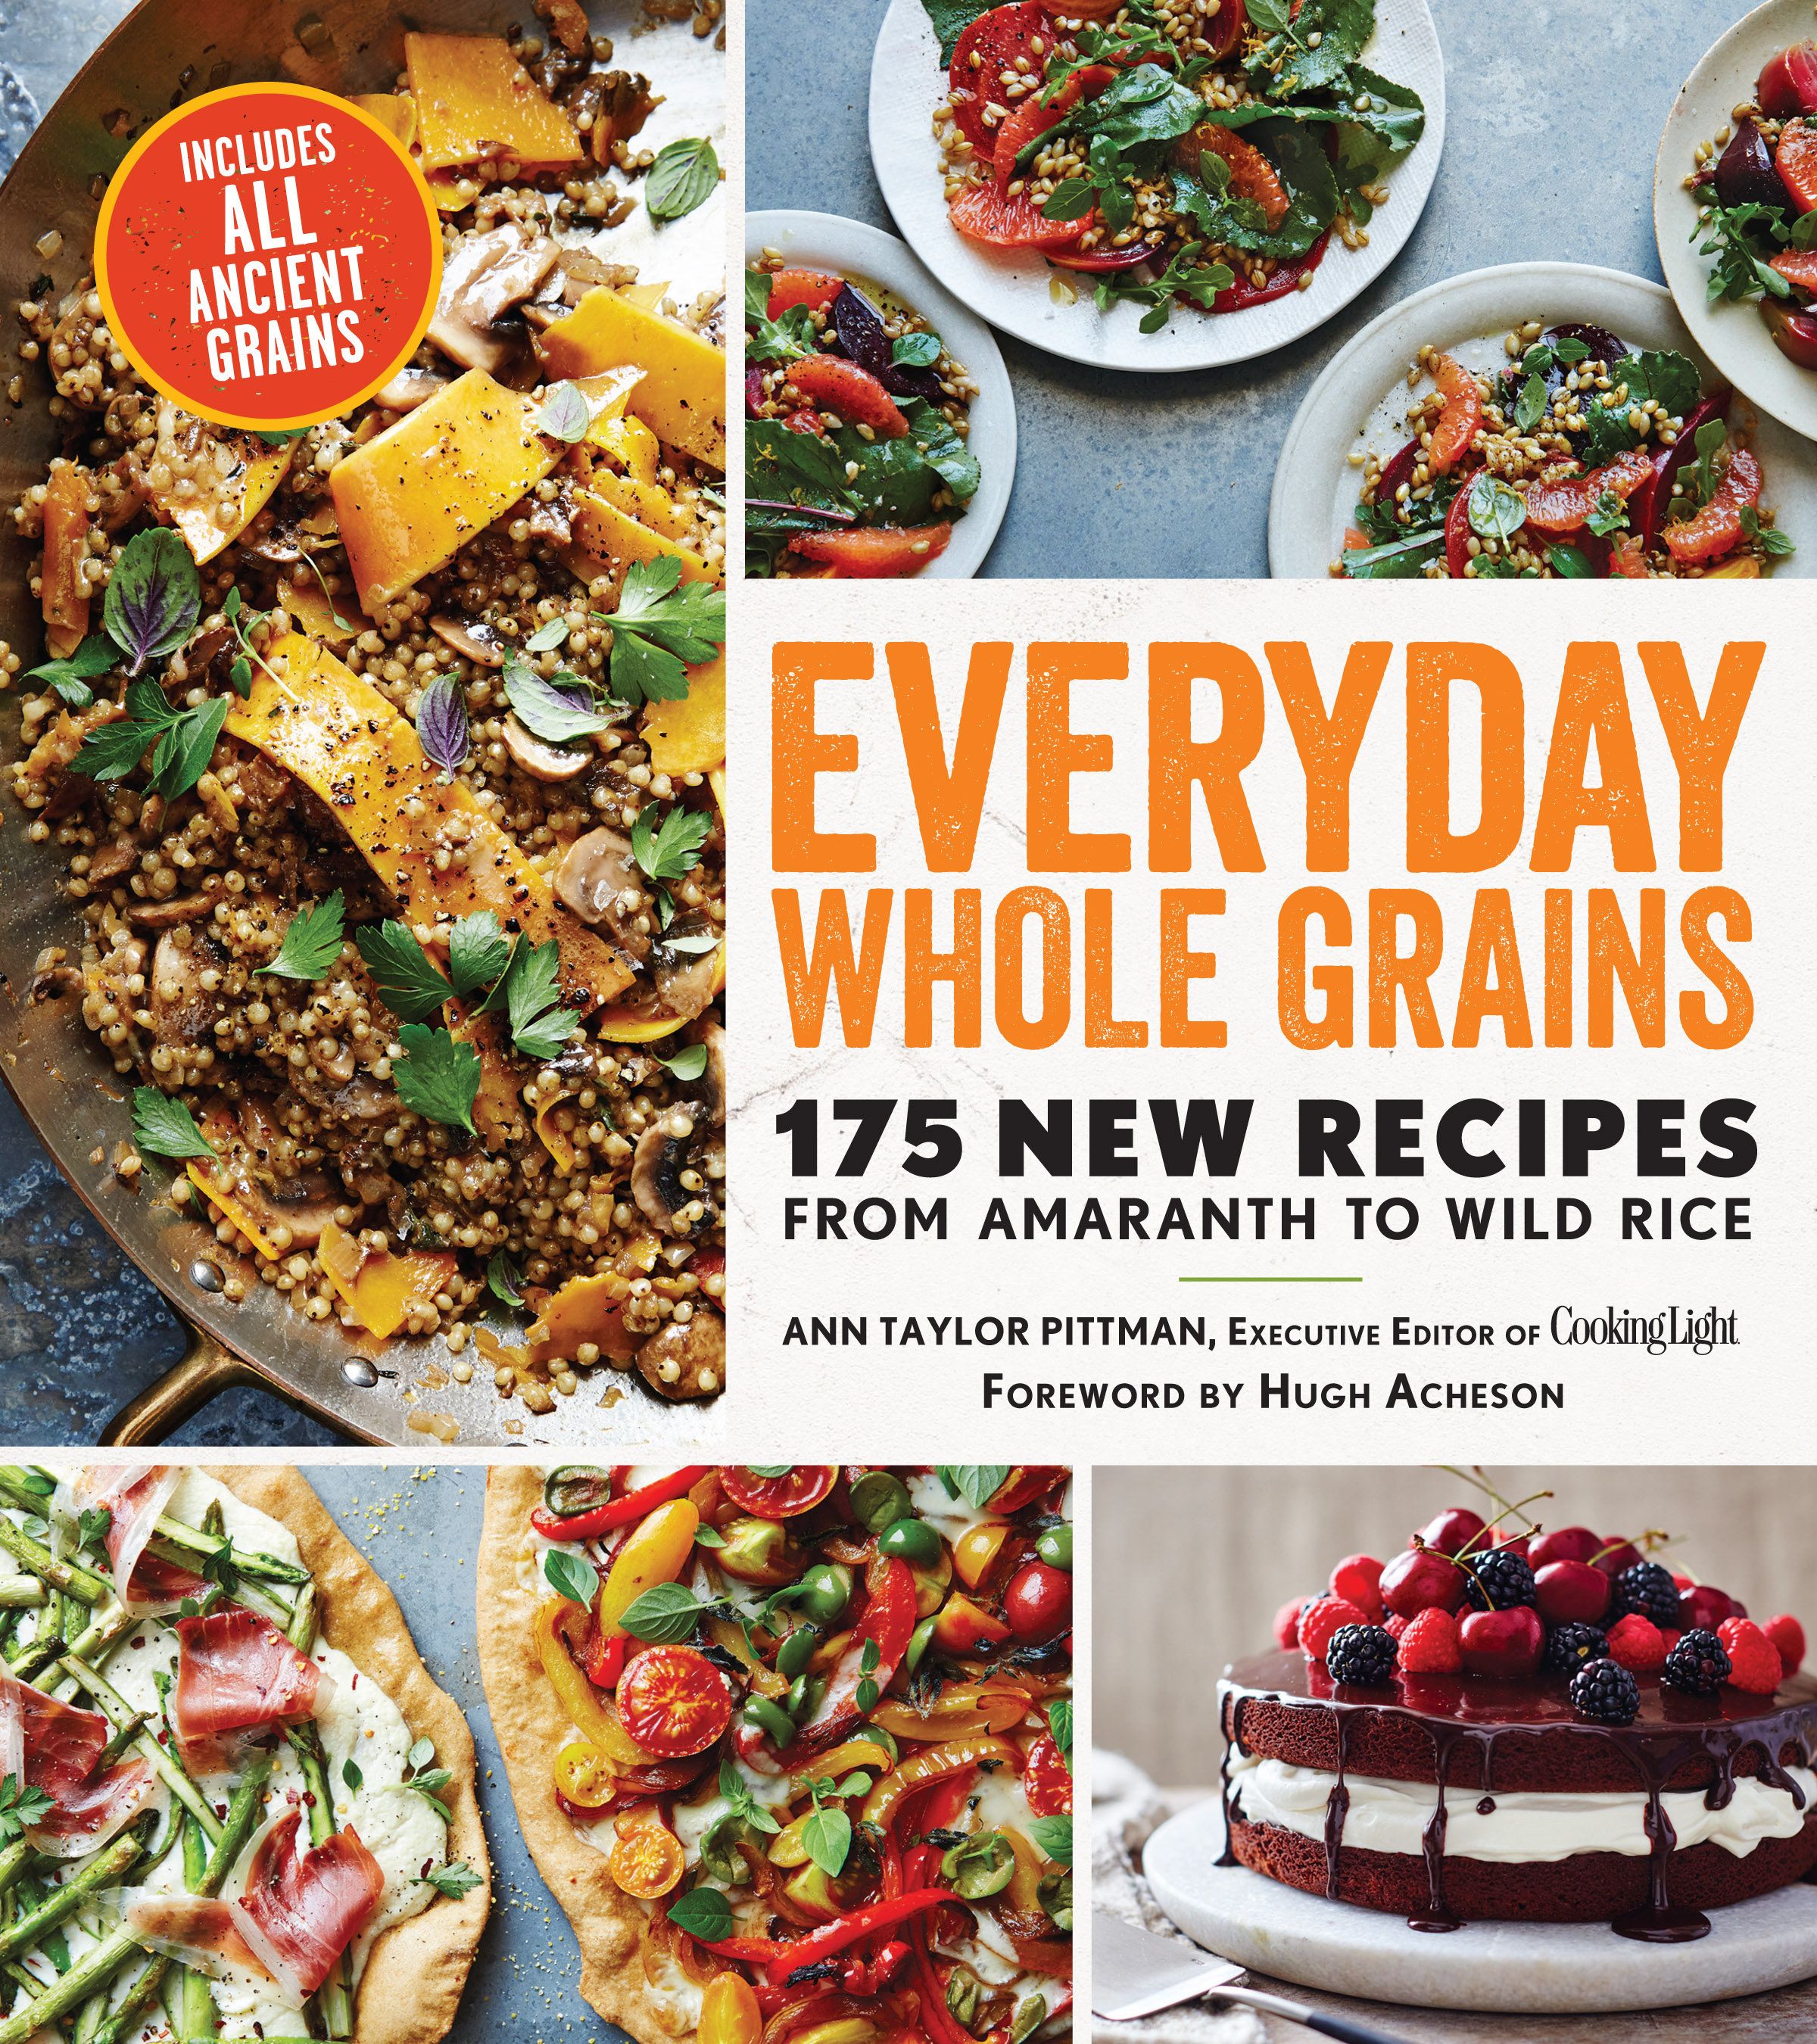 EverdayWhole Grains